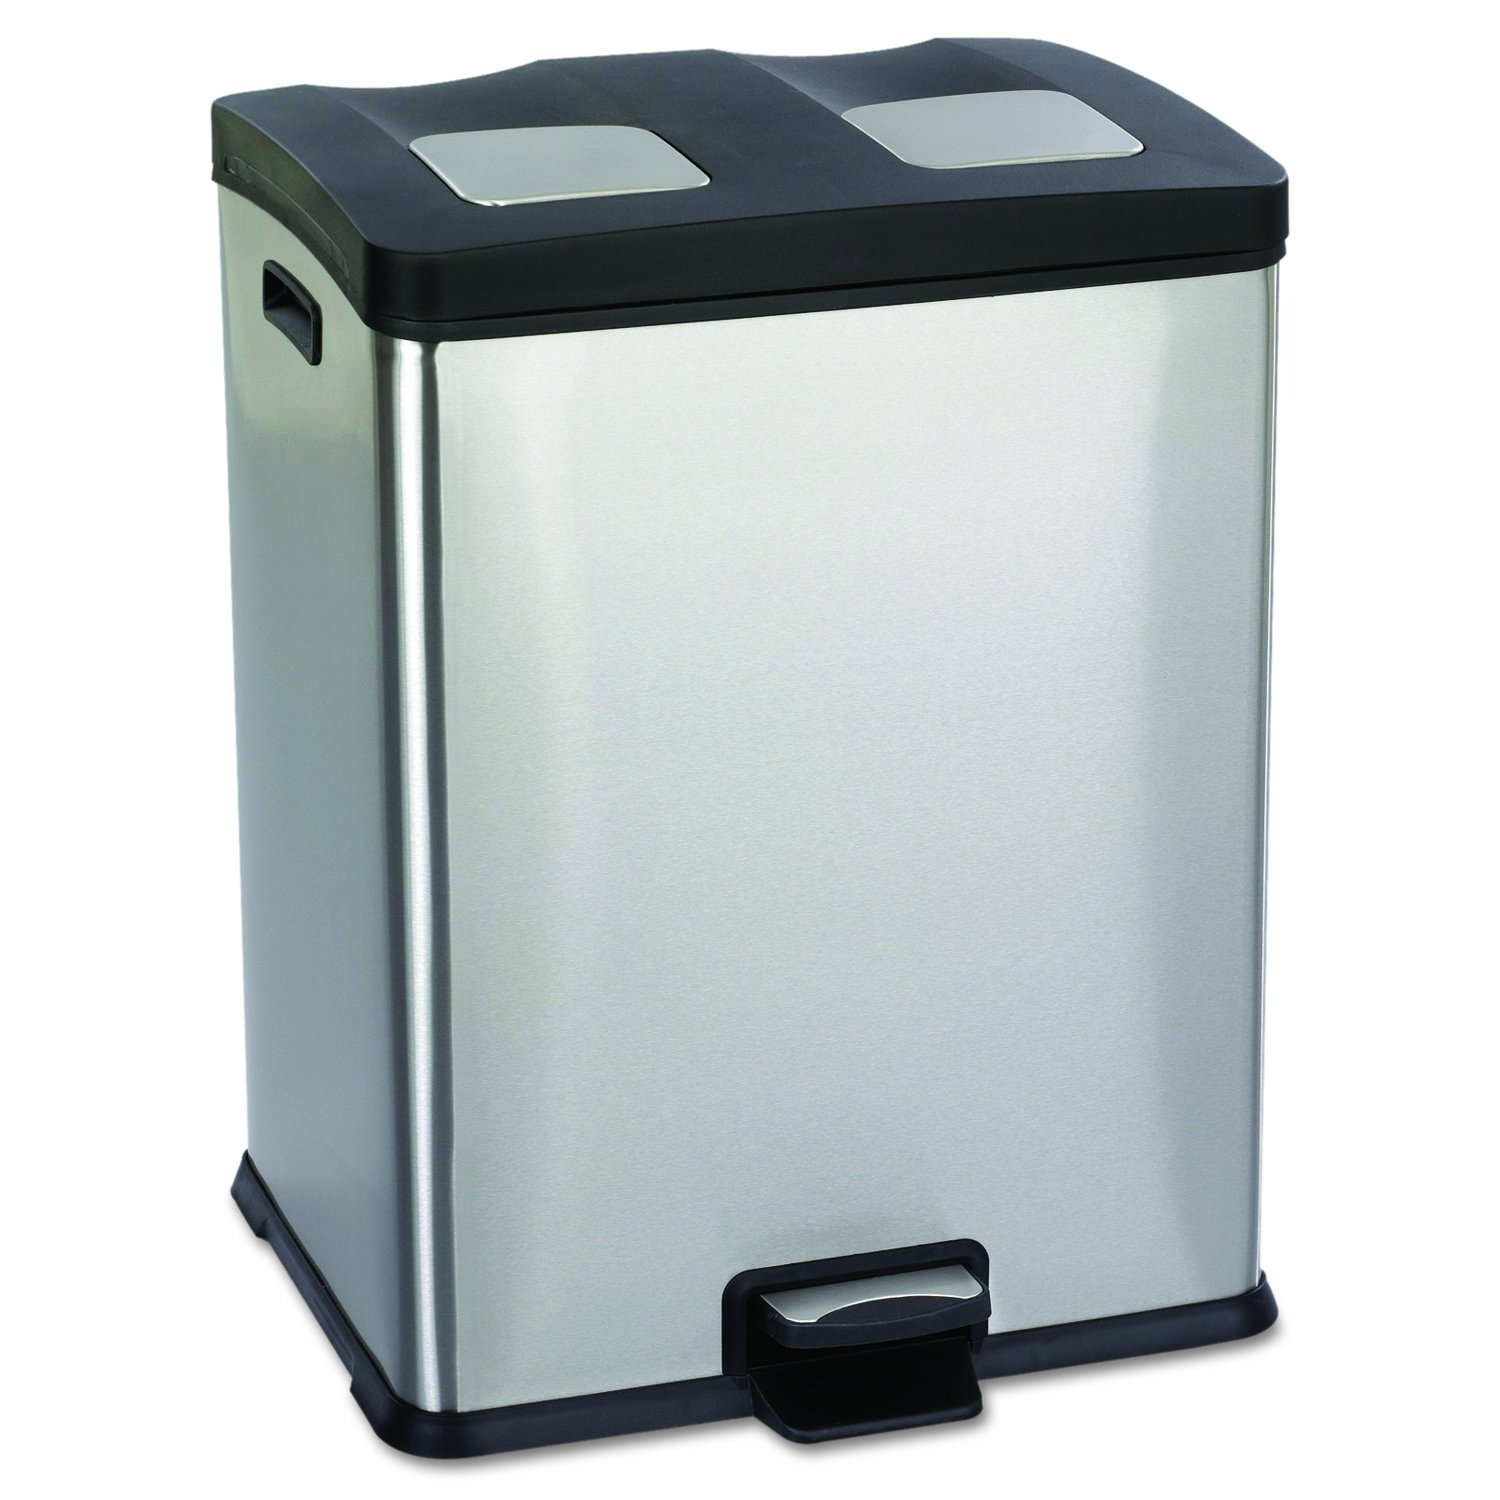 Safco Products 9634SS Right-Size Waste Recycling Station, Two 7 1/2-Gallon Compartments, Stainless Steel